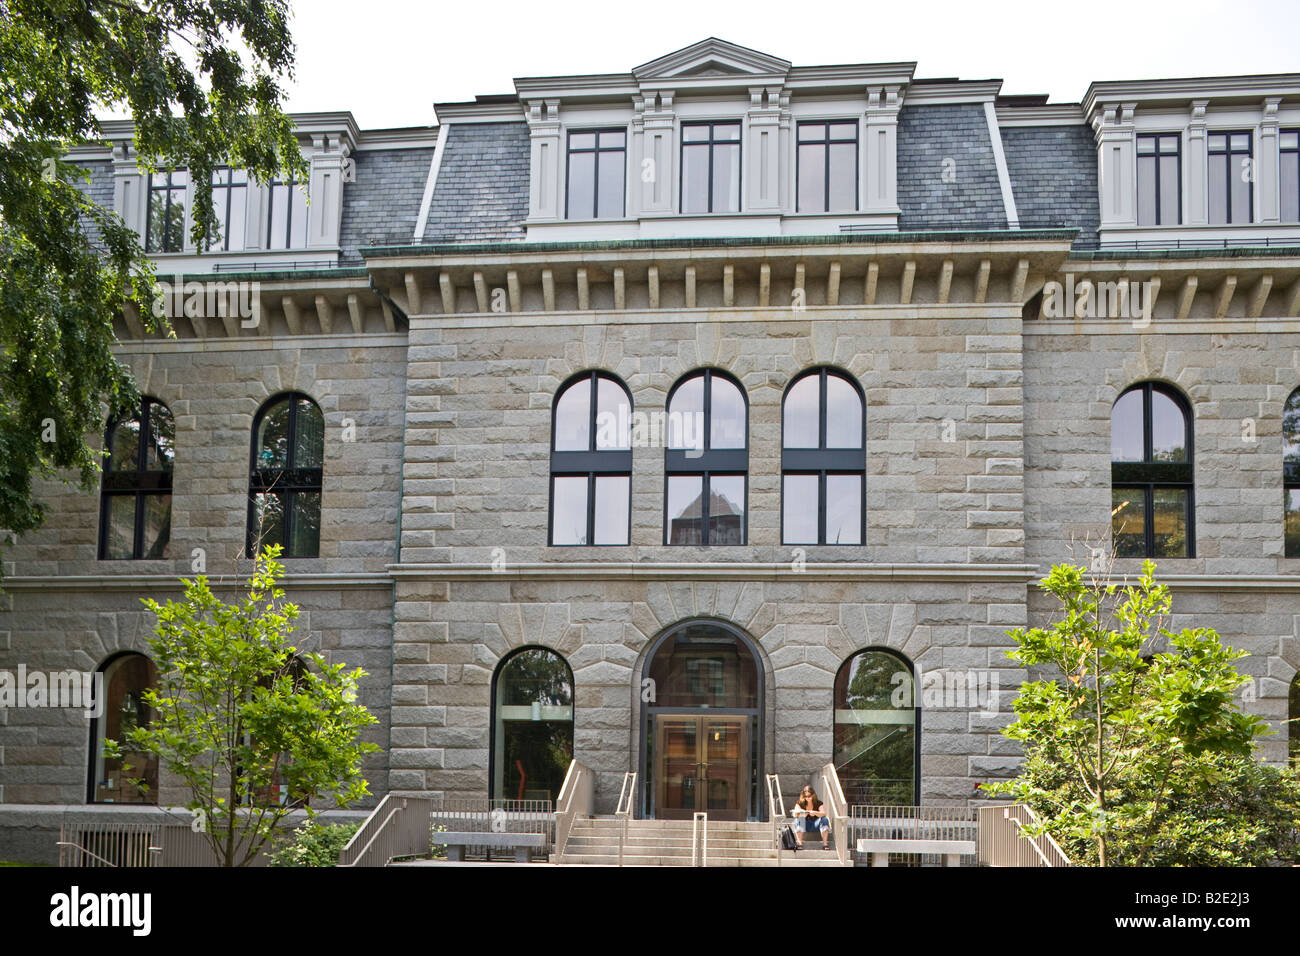 Boylston Hall, Harvard University, Cambridge, Massachusetts, USA - Stock Image